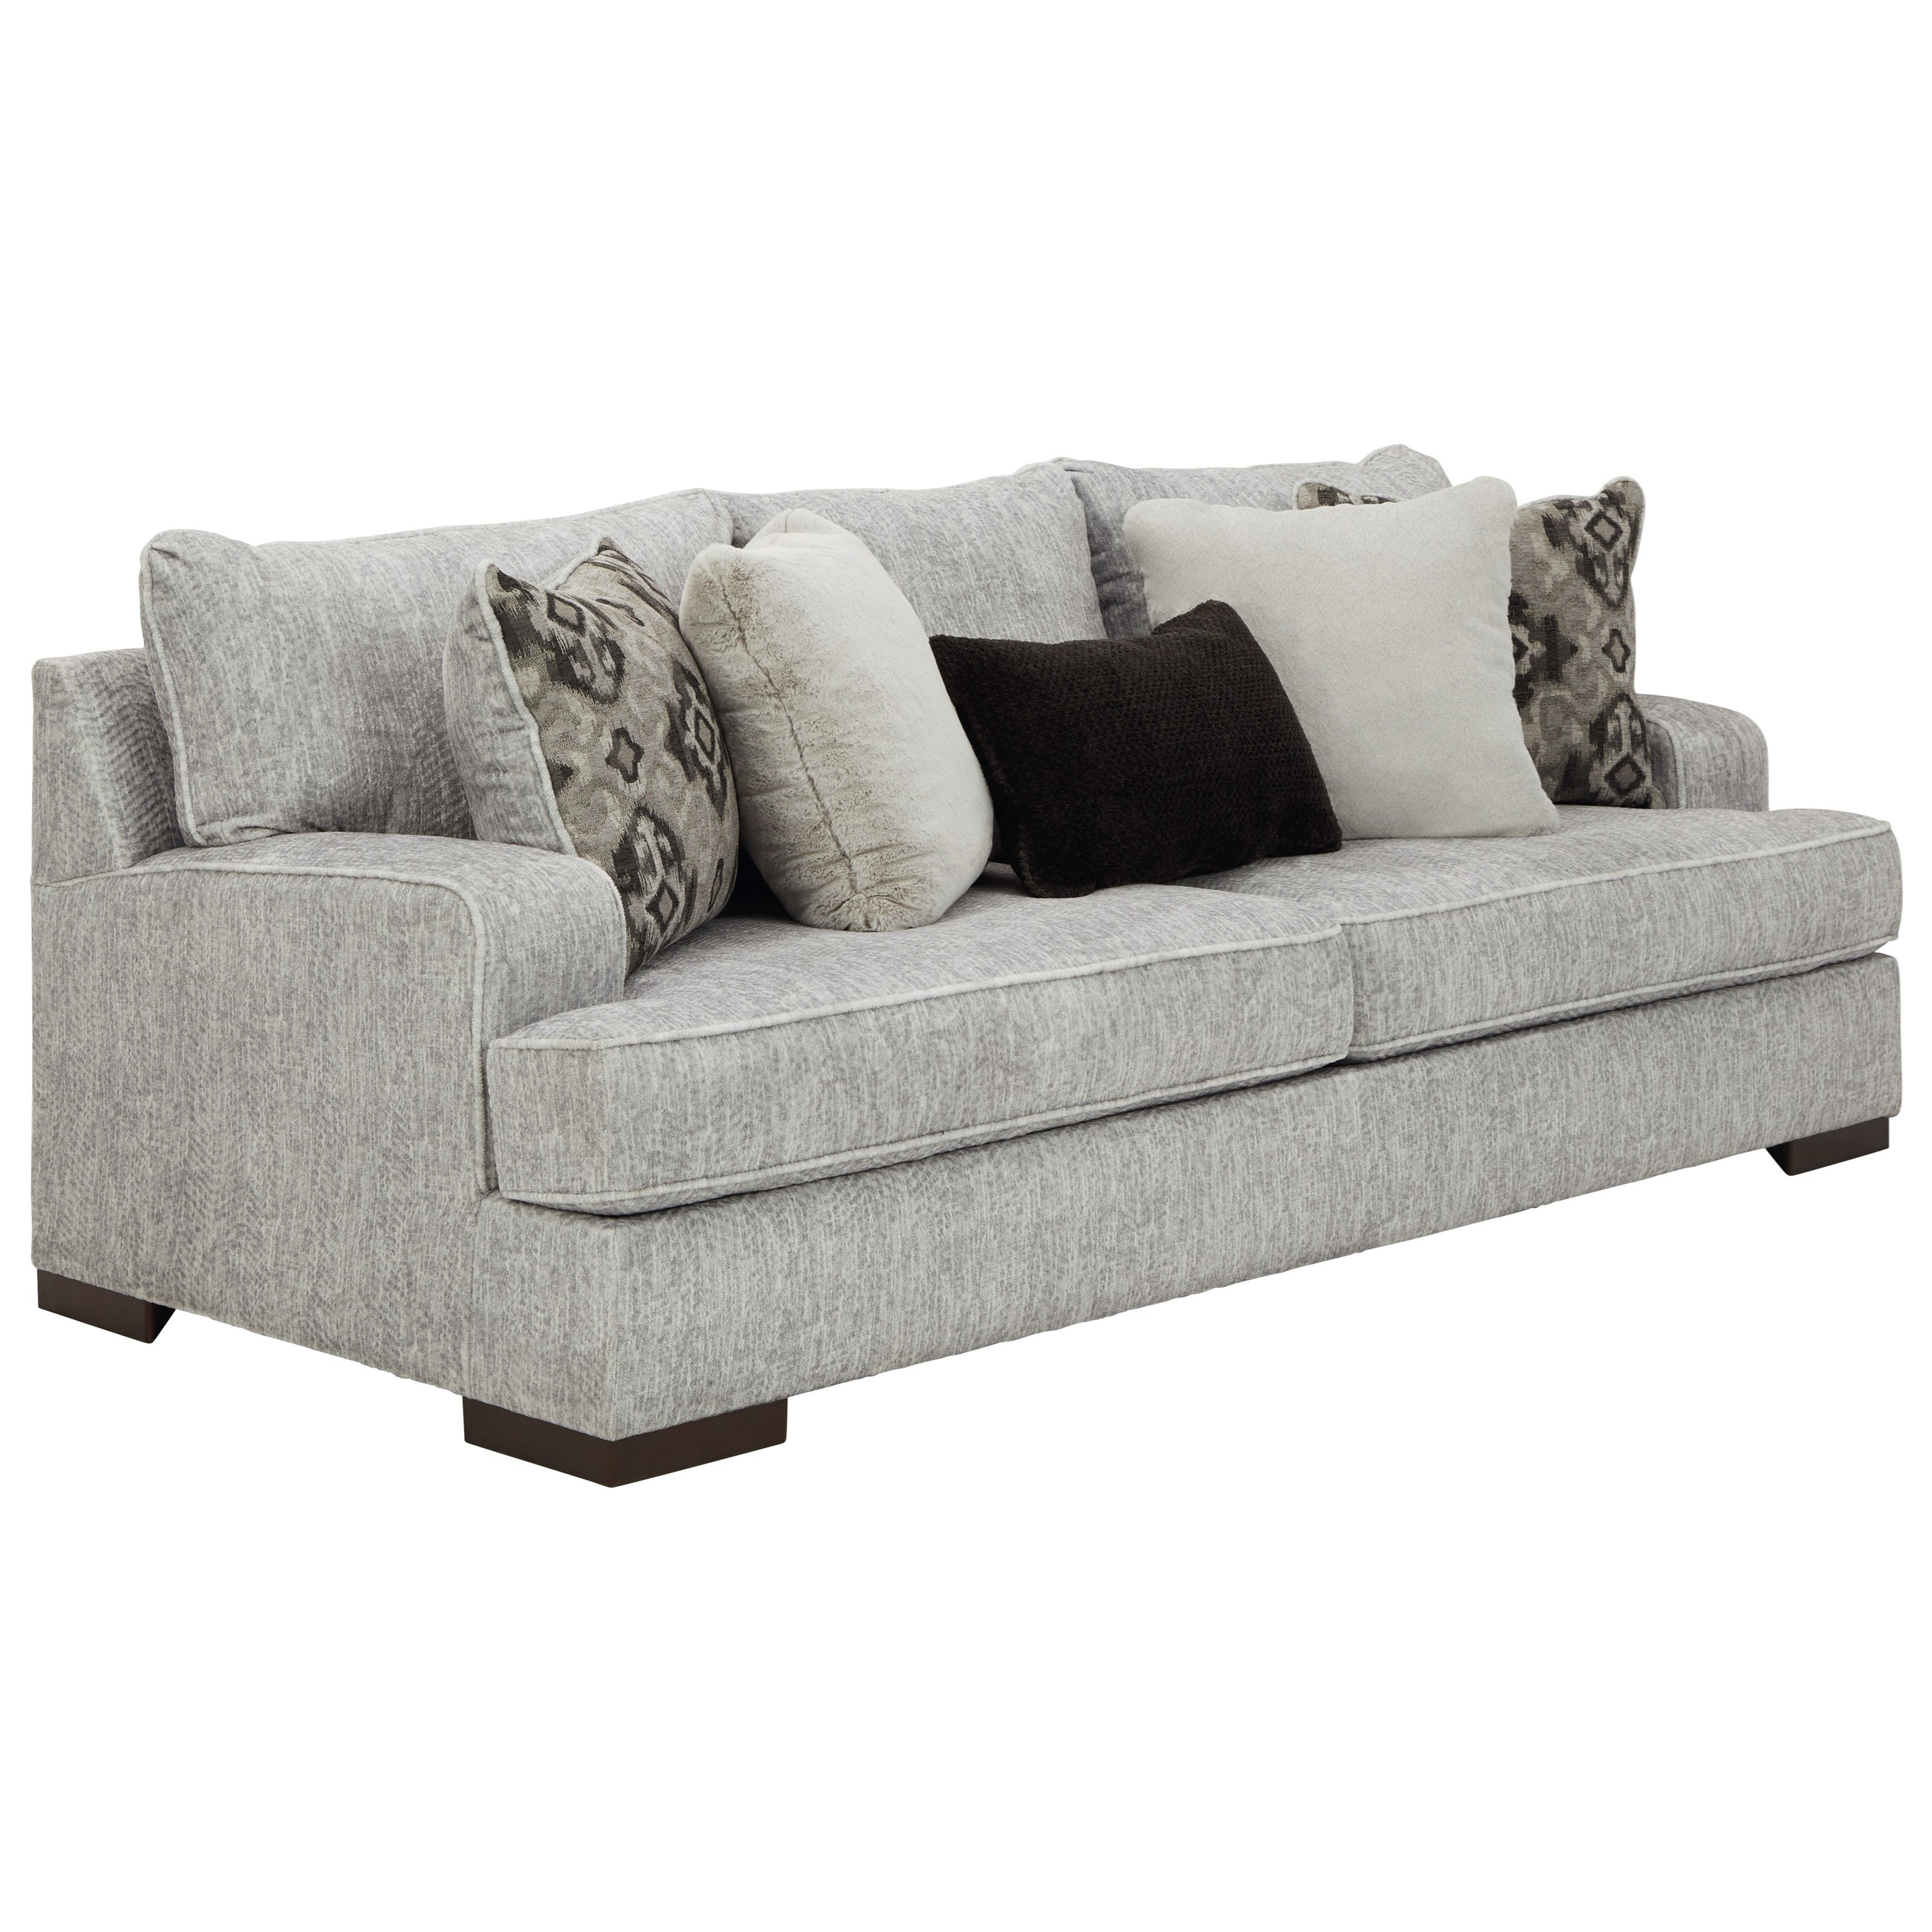 Mercado Sofa by Benchcraft at Miller Waldrop Furniture and Decor